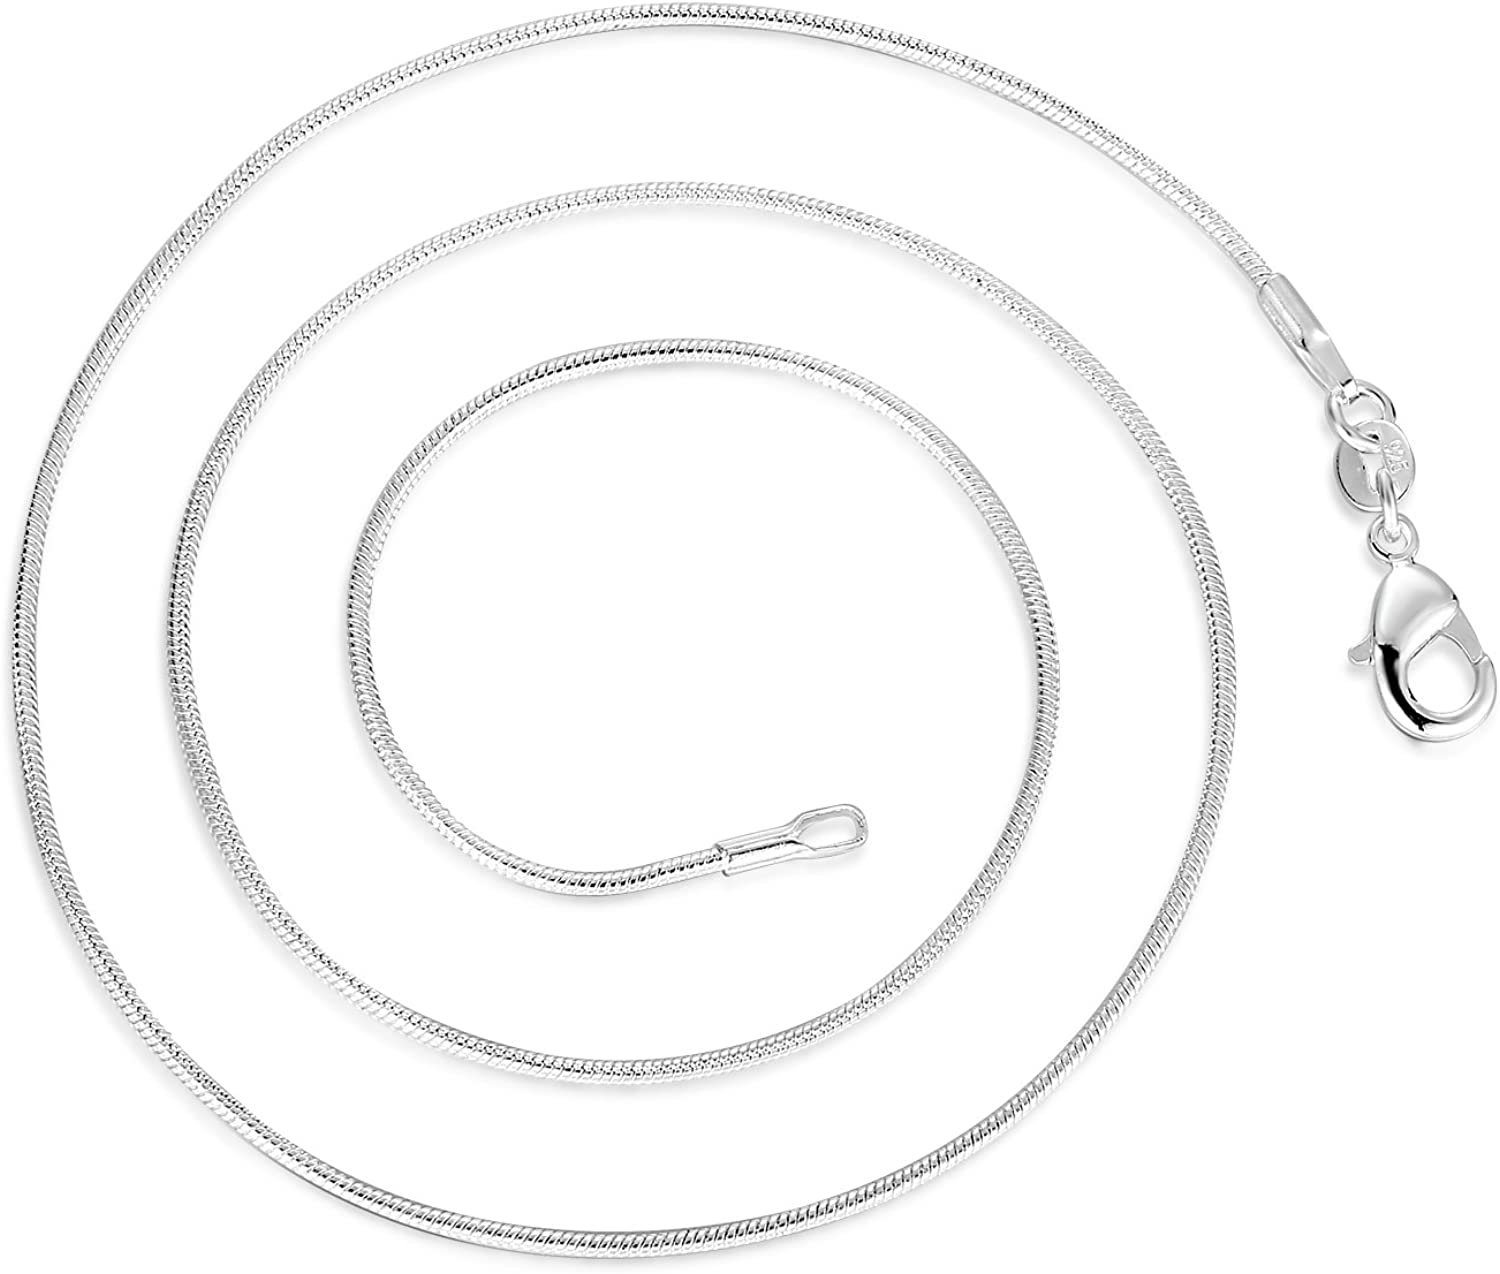 22 inch Snake Chain SILVER PLATED 1.2mm width